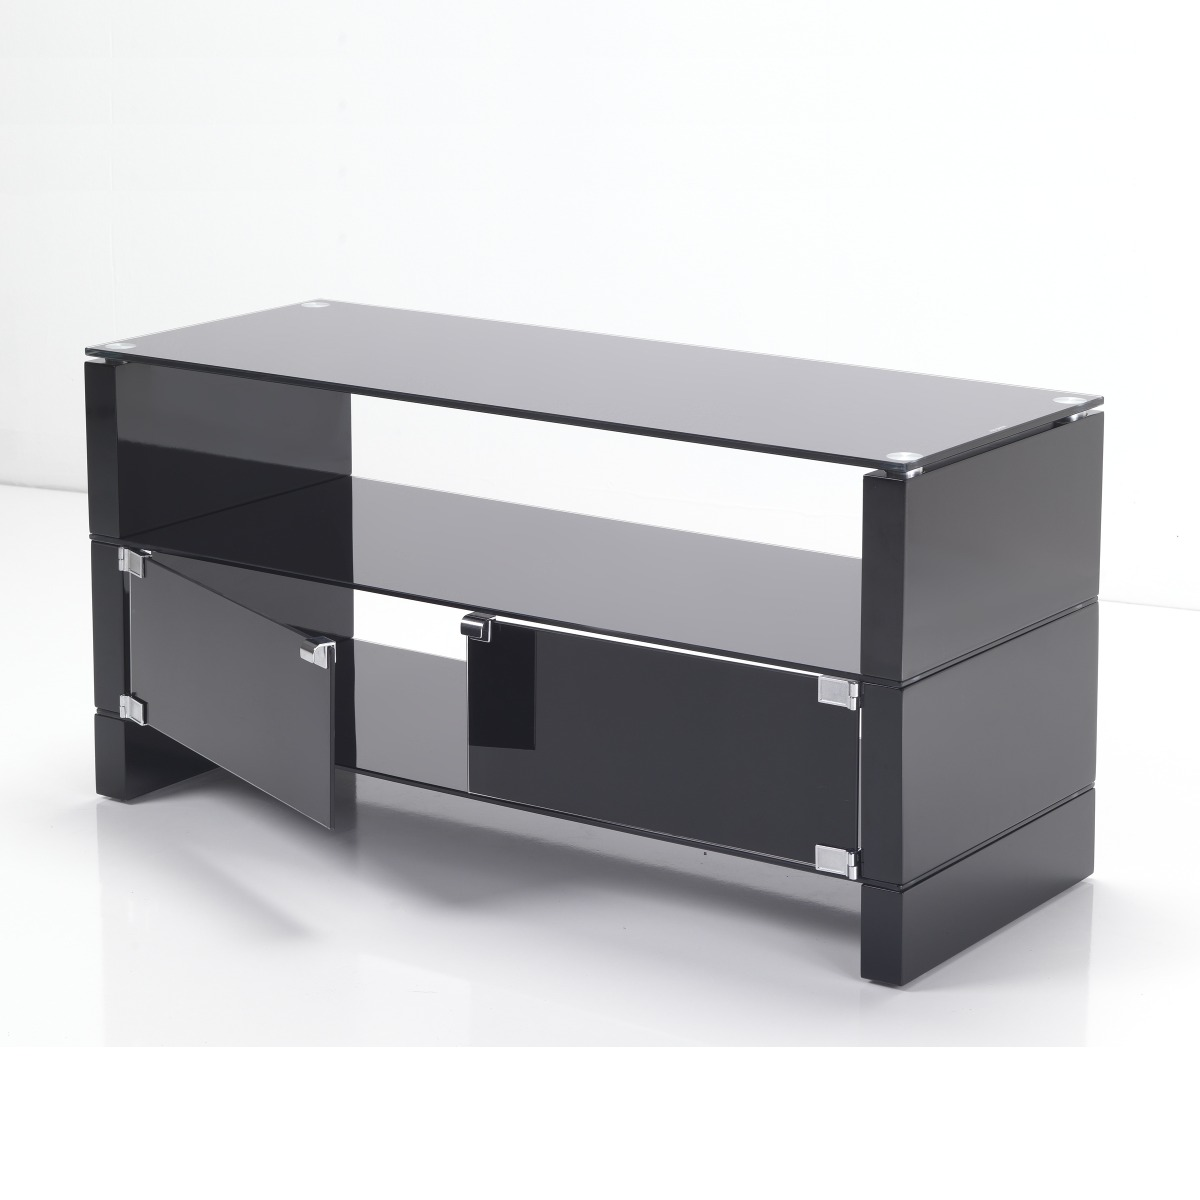 Black glass flat screen tv stand cabinets 32 40 inch ebay for Flat screen tv console cabinet